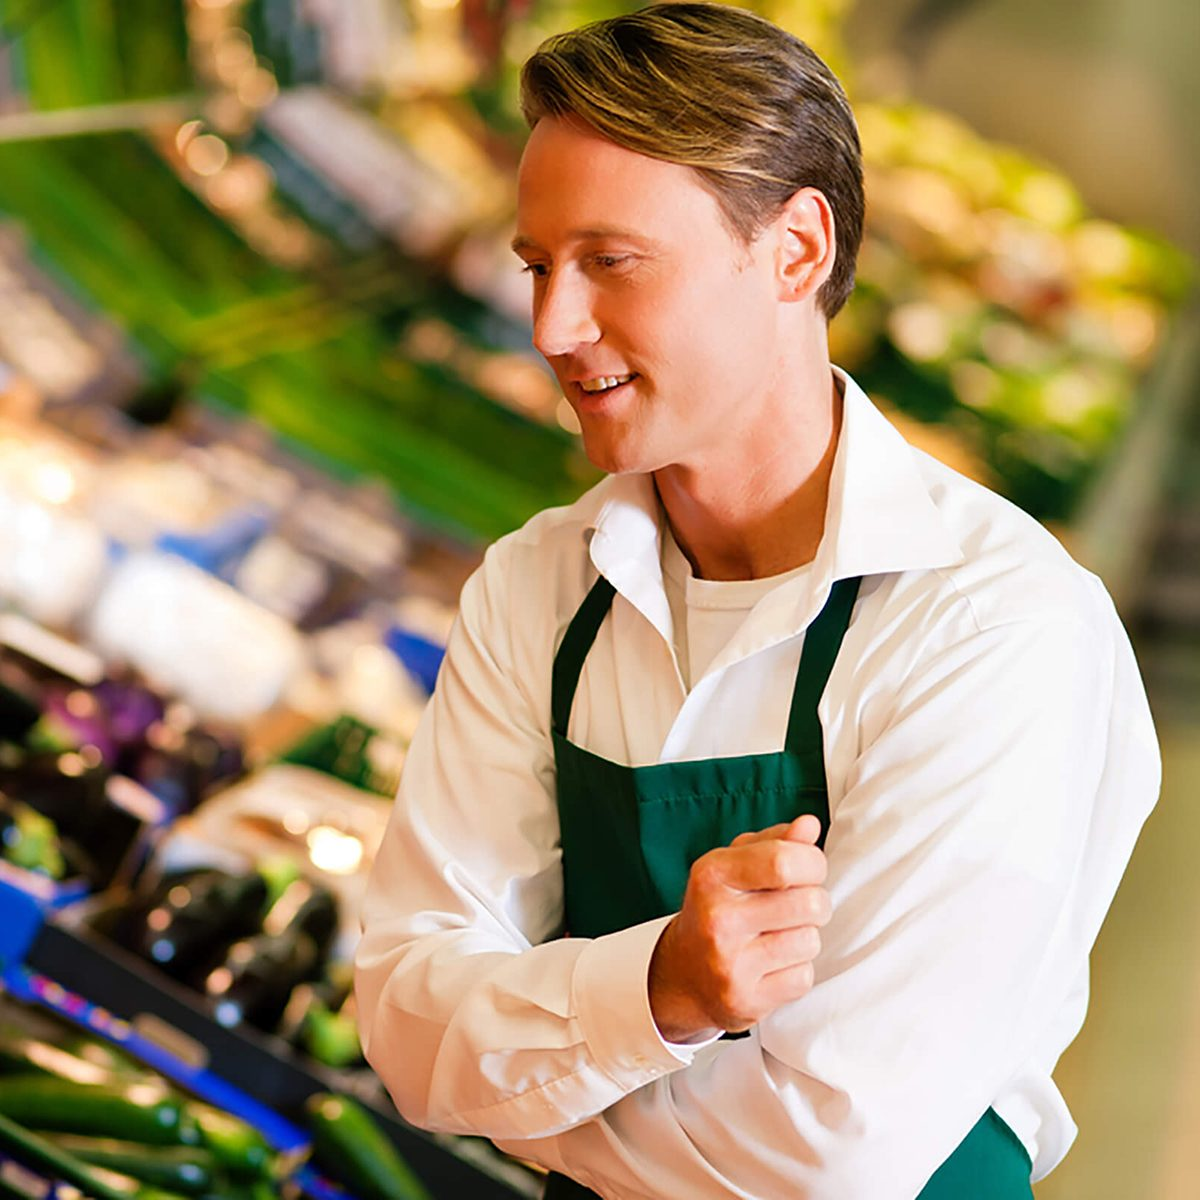 Shop assistant in a supermarket at the vegetable shelf checking the stuff for sale; Shutterstock ID 63574951; Job: RD